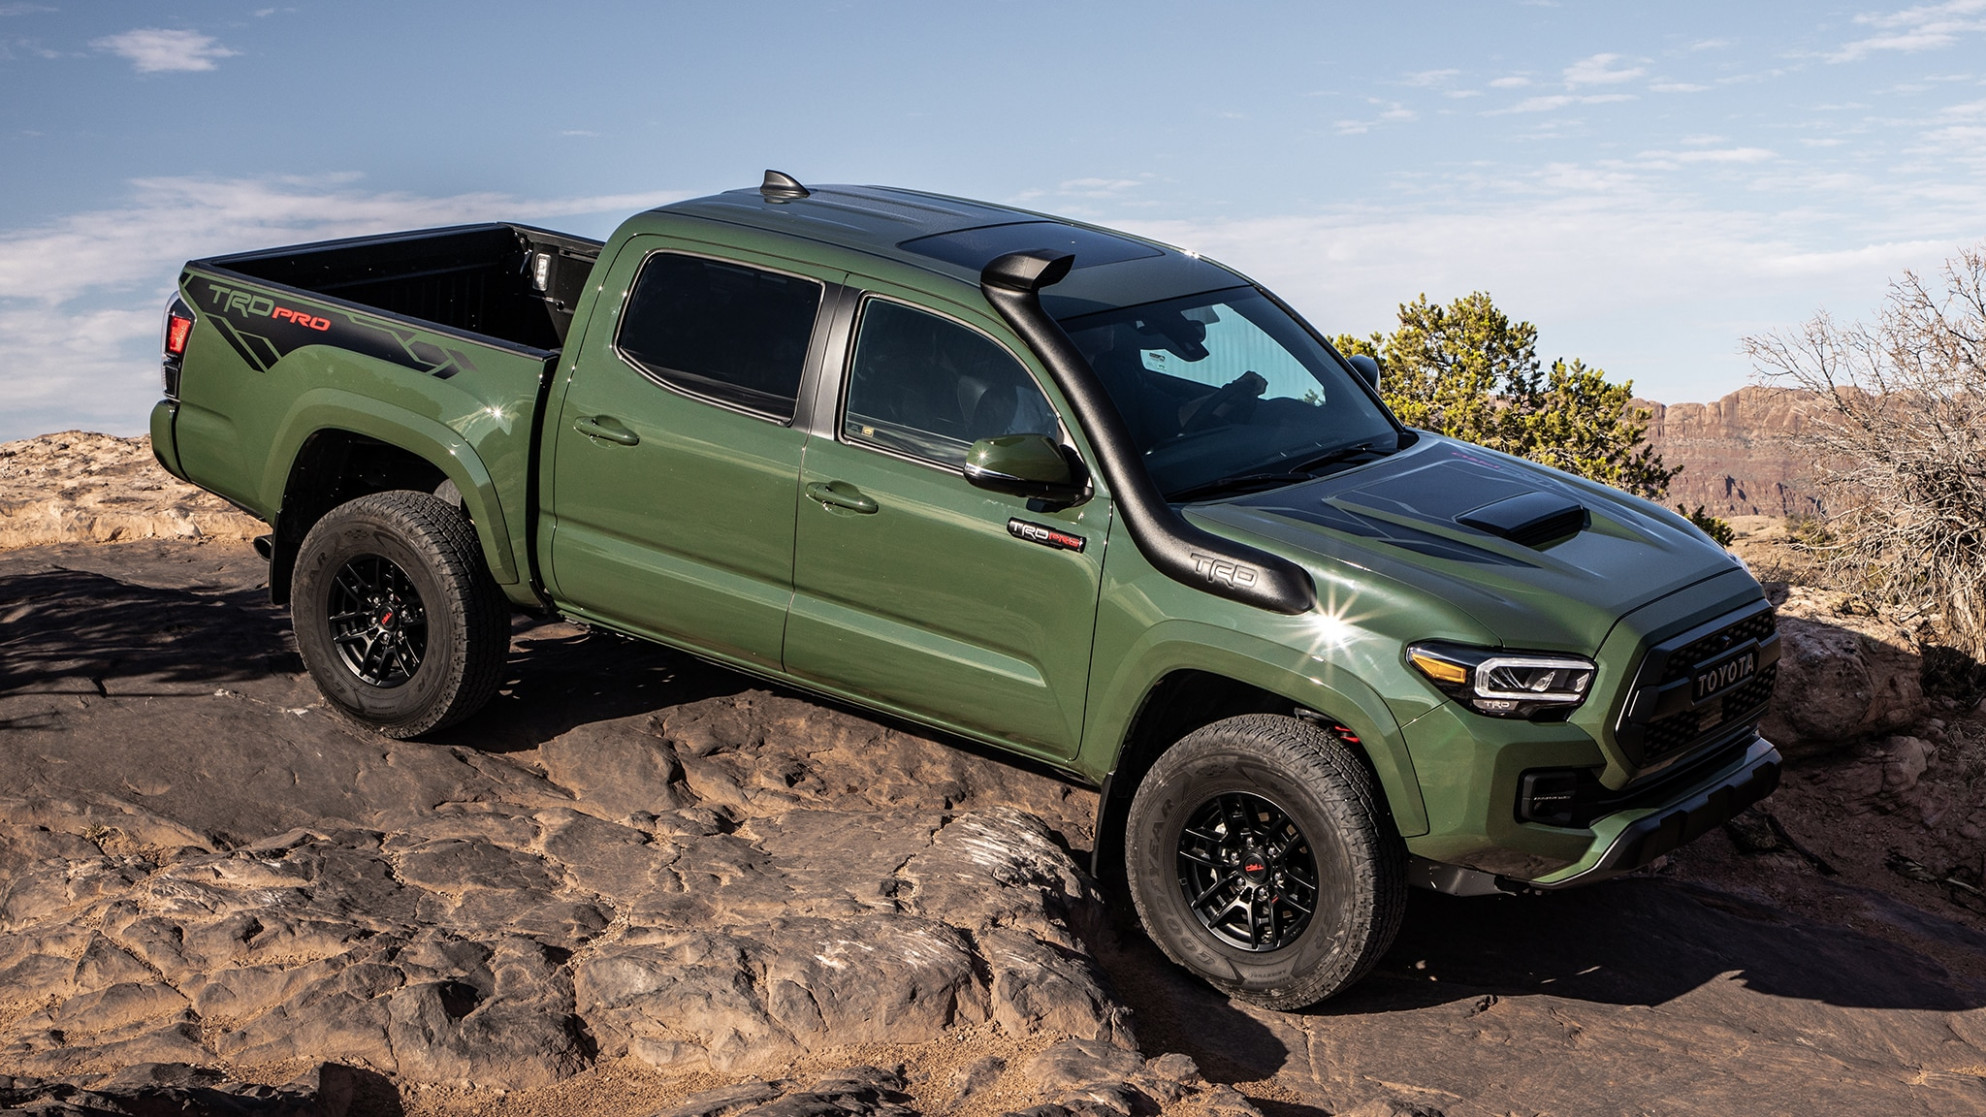 9 Toyota Tacoma TRD Pro Review: What's Improved, What's Not